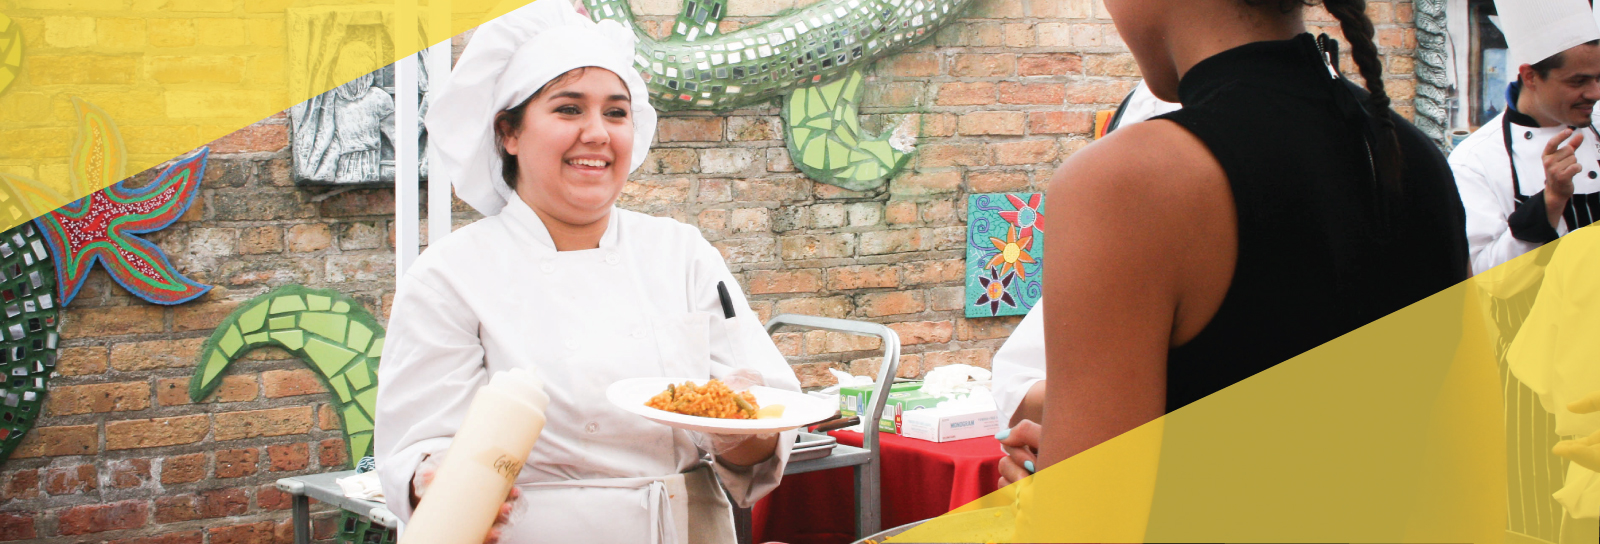 <h2>You're invited to Summer Teen Cuisine!</h2><div class='clear'></div><div class='gal_content'><p><p>Enjoy lunch on our downtown terrace while supporting Chicago's teens!</p> <a href='https://www.afterschoolmatters.org/support-us/events/'>It's what matters > </a></p></div>